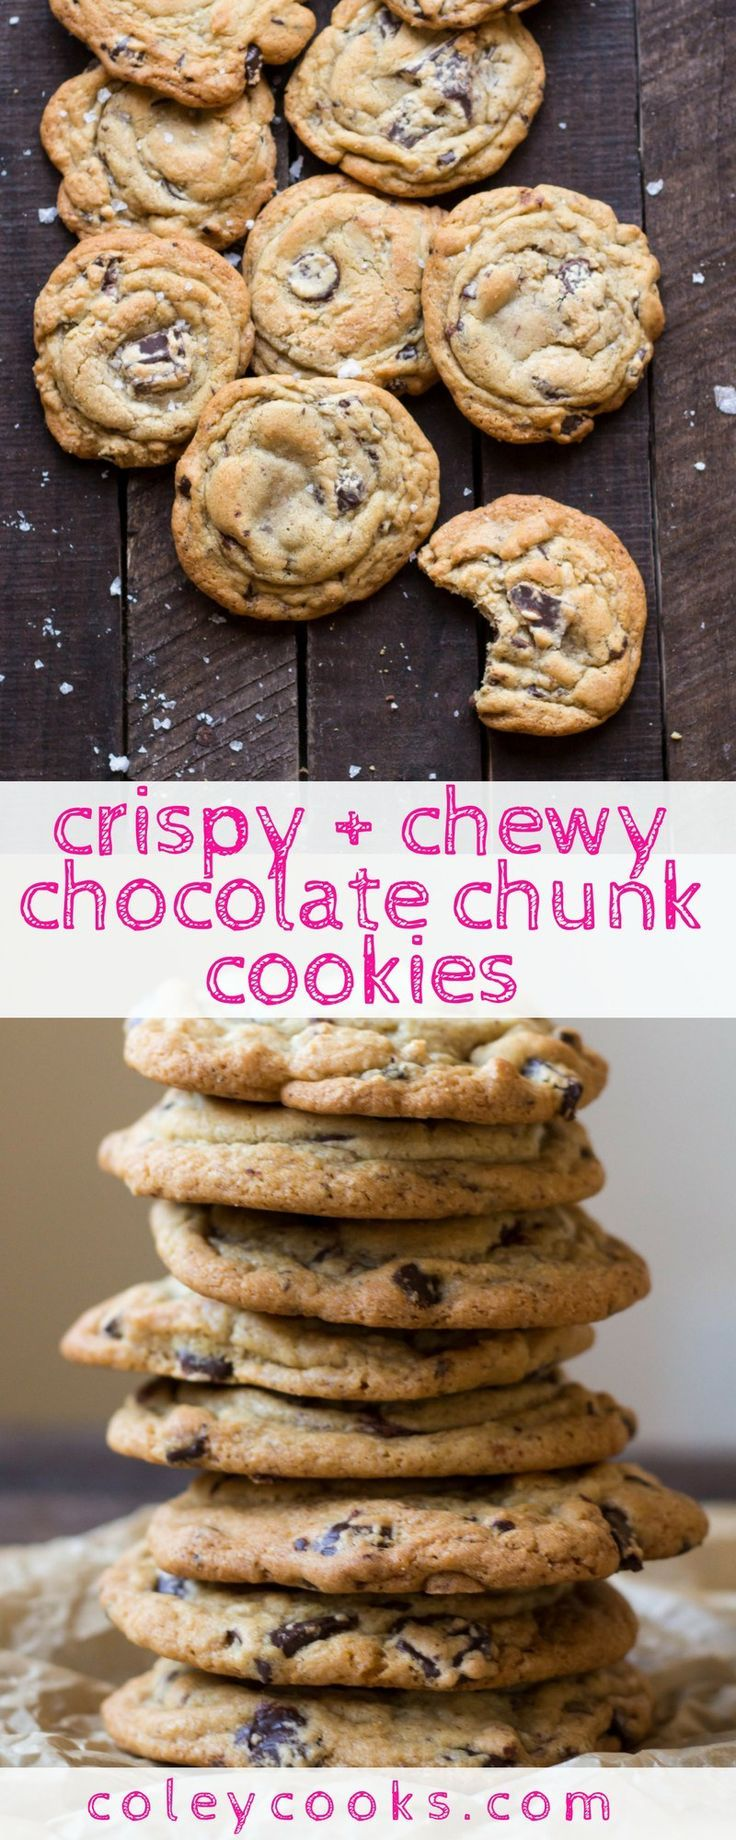 Crispy + Chewy Chocolate Chunk Cookies | Coley Cooks...